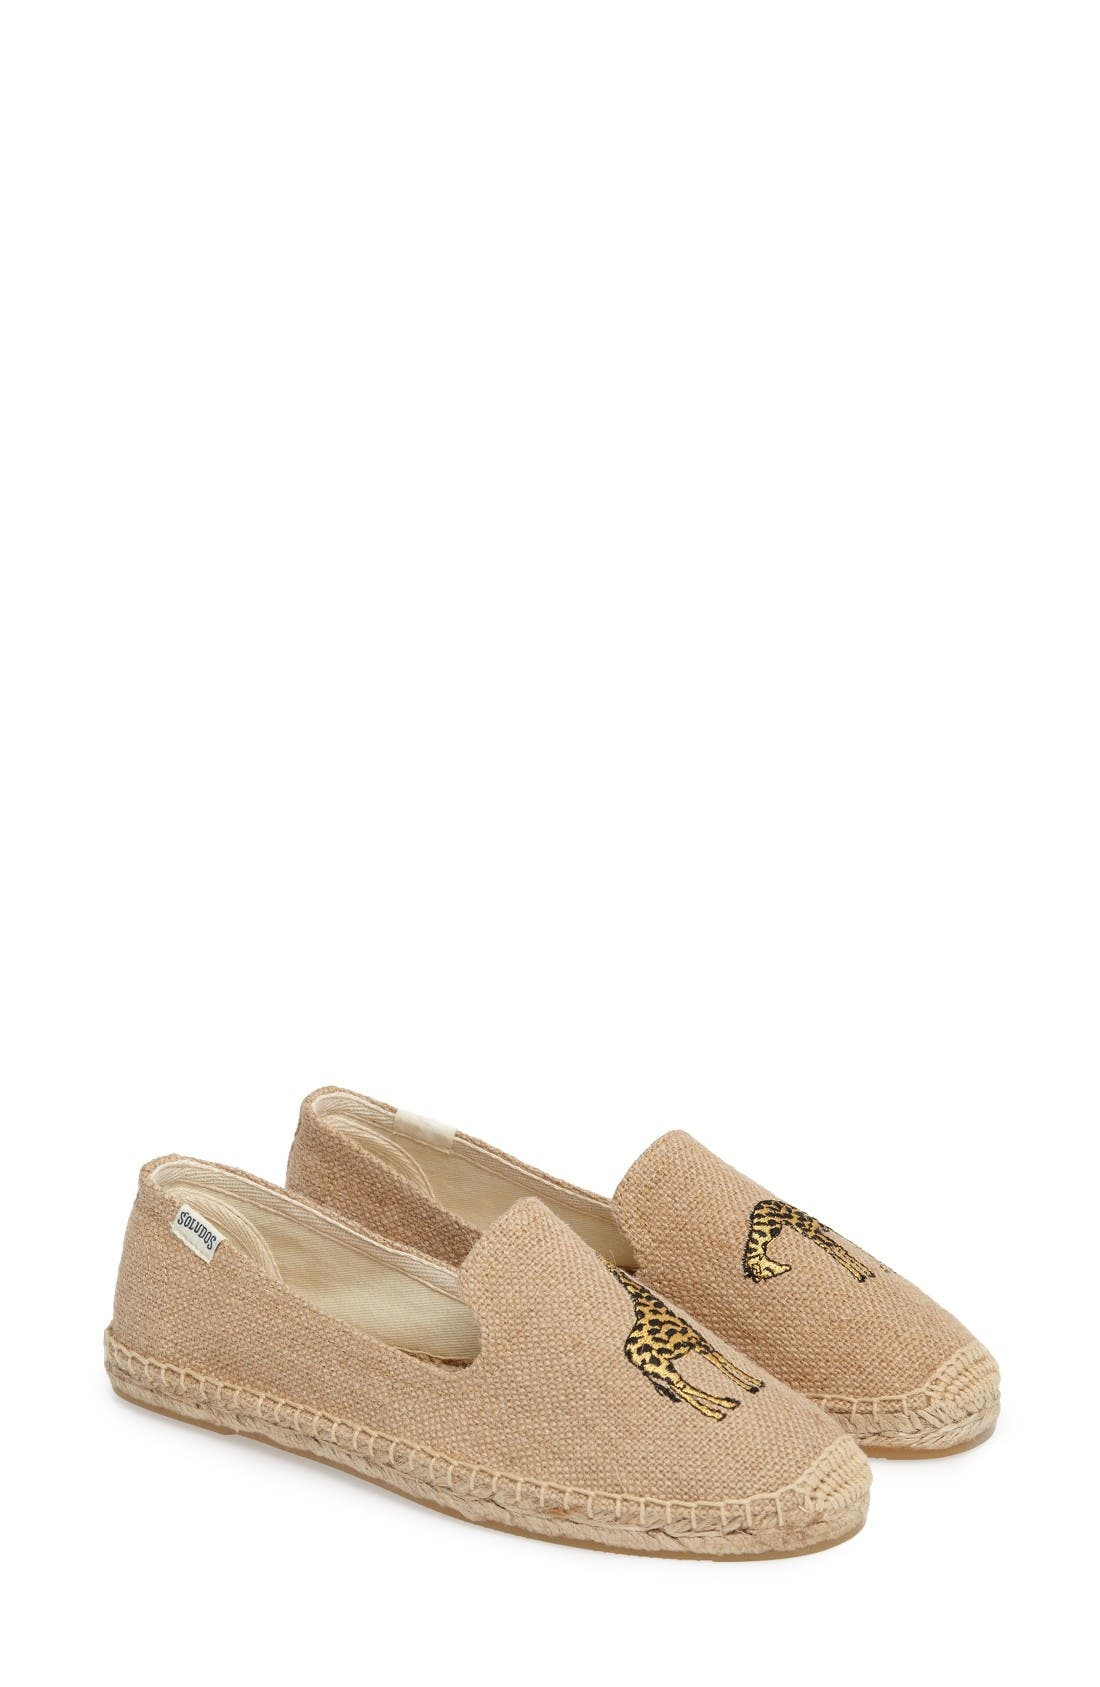 Giraffe Espadrille Flat,                             Alternate thumbnail 2, color,                             Natural